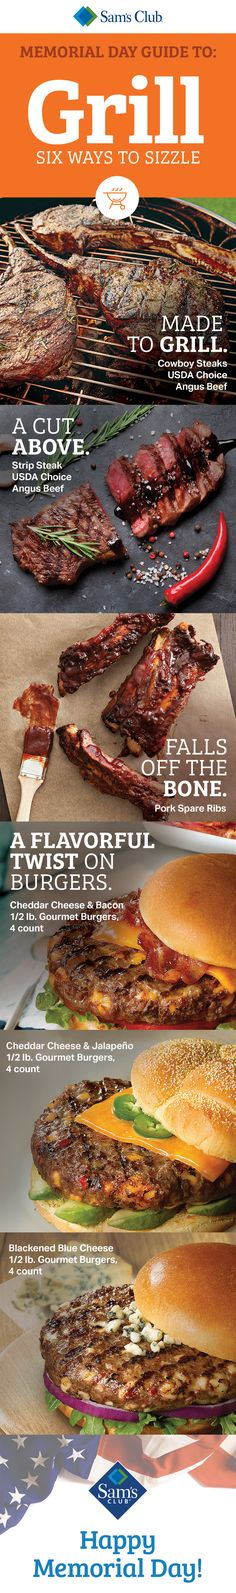 Master the flame with exceptional quality meats at great Memorial Day savings.